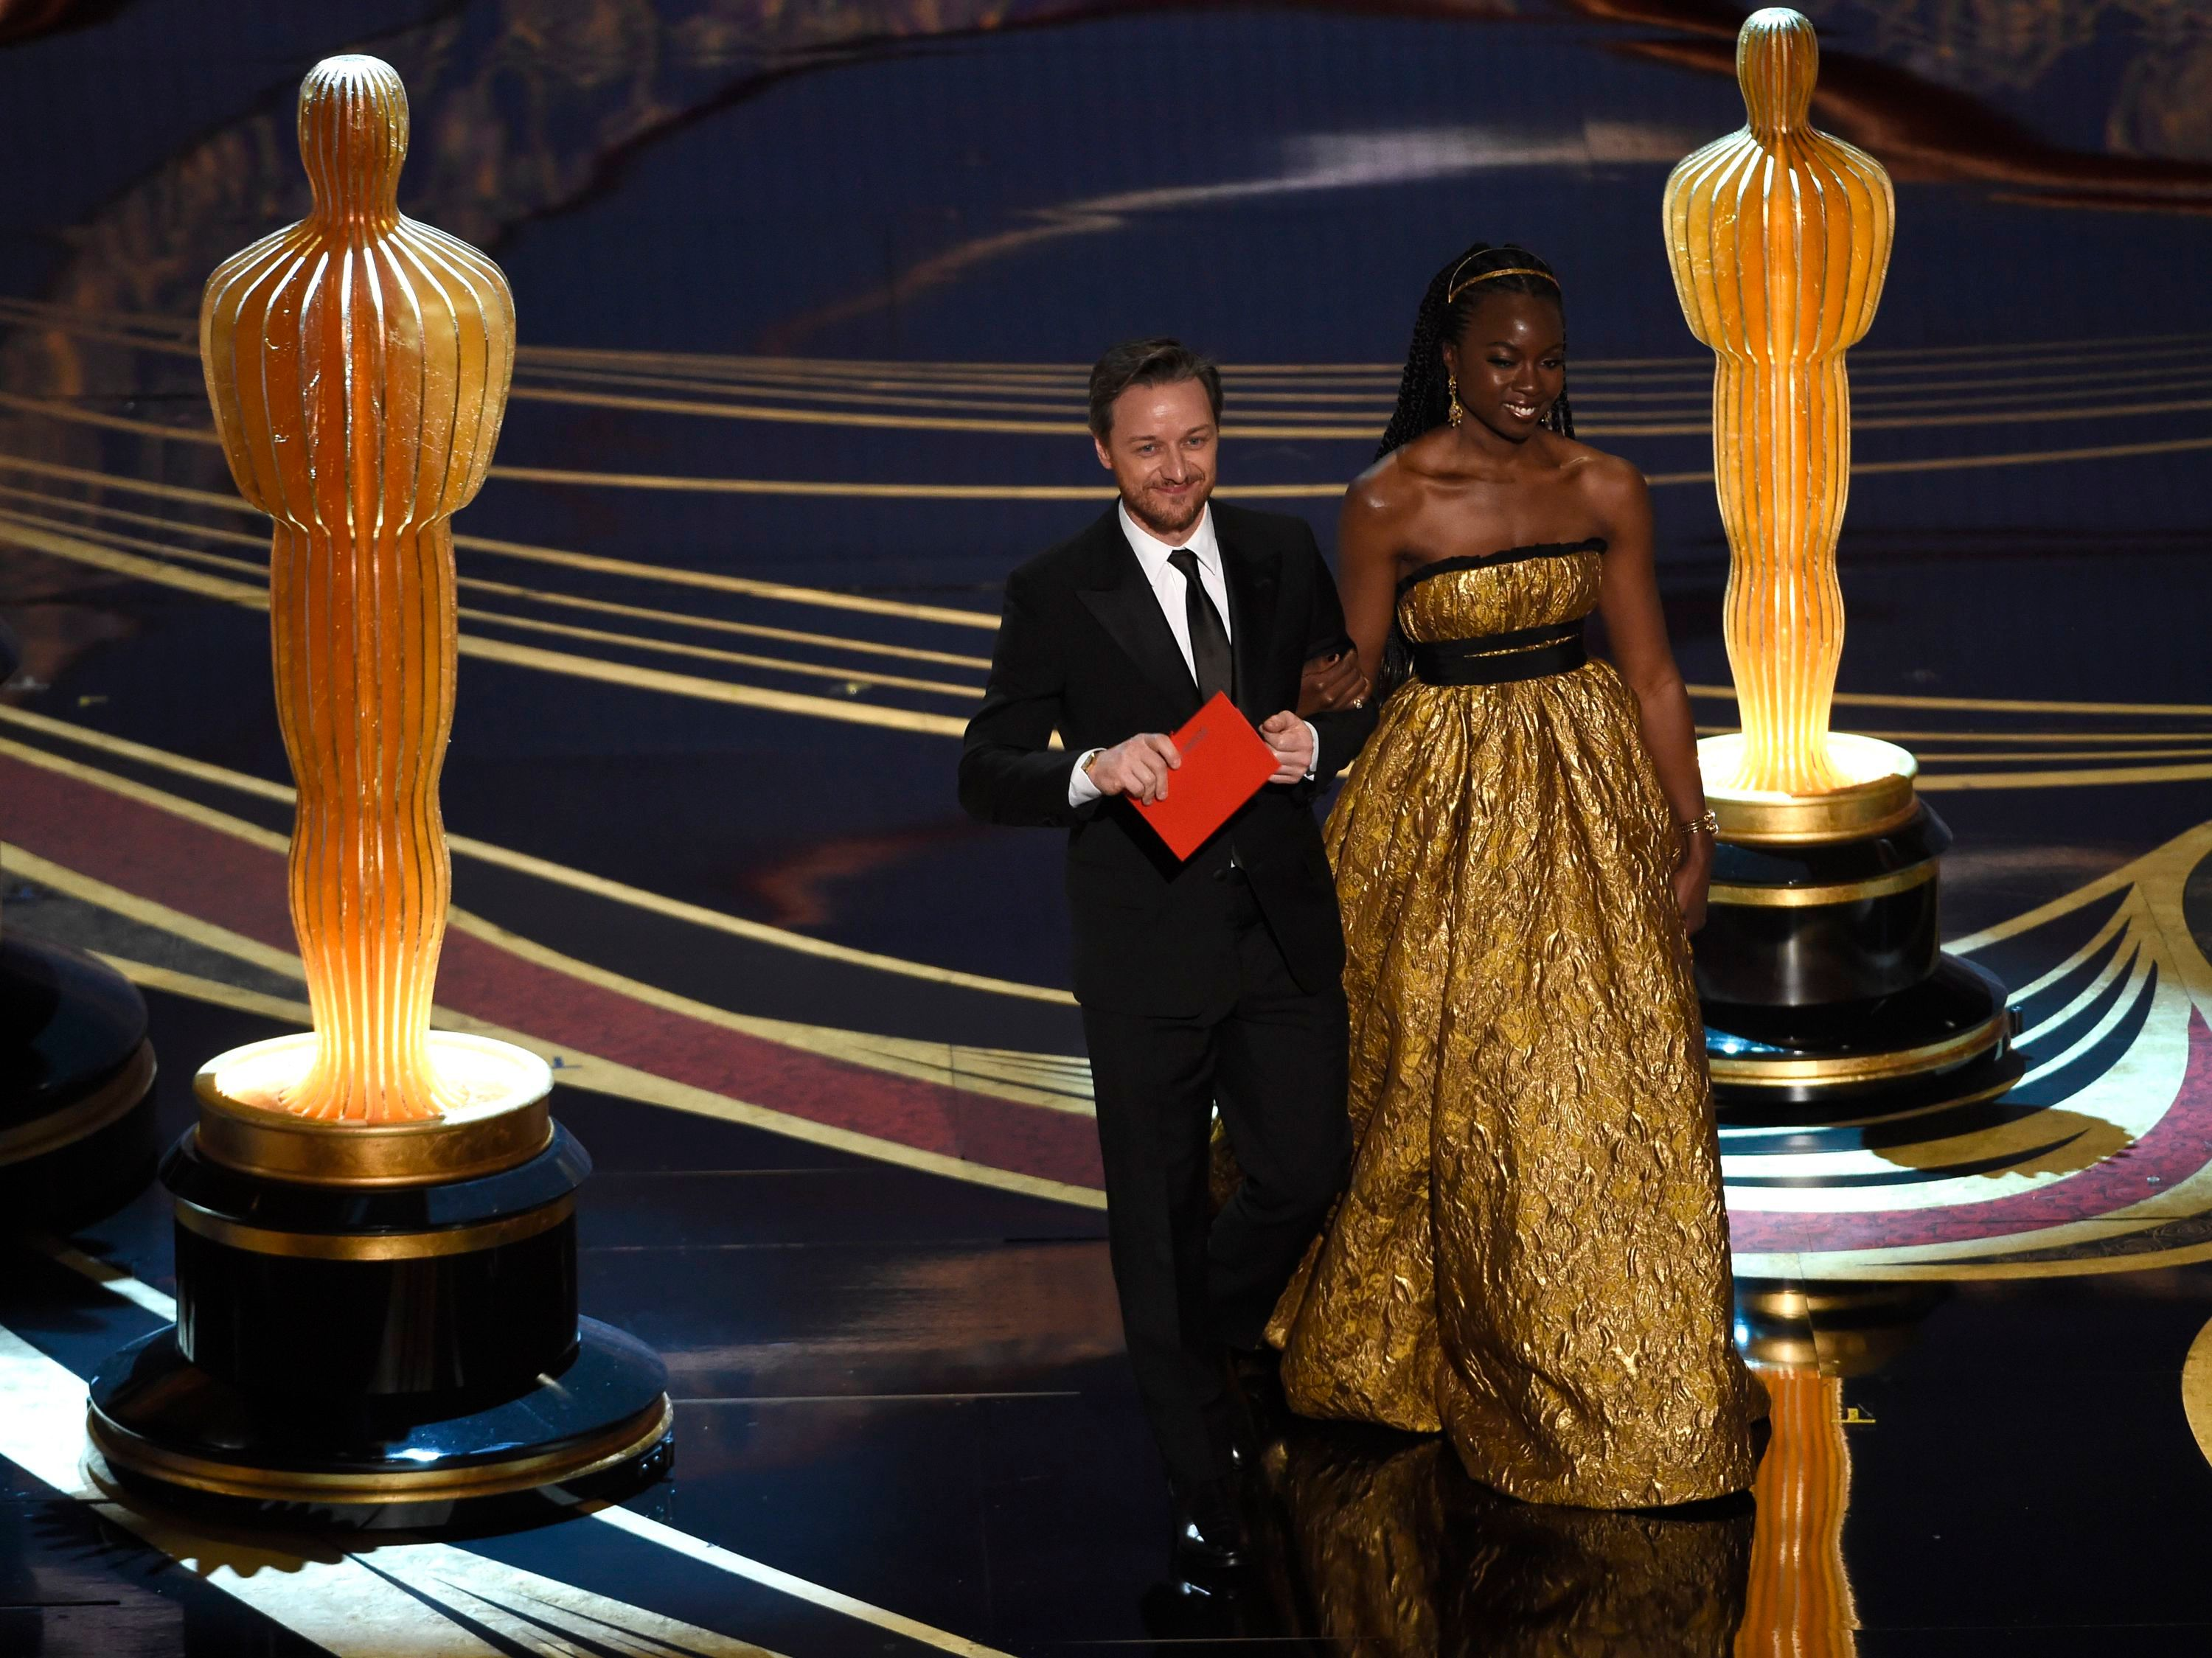 James McAvoy, Danai Gurira. James McAvoy, left, and Danai Gurira walk on stage to present the award for best sound editing at the Oscars, at the Dolby Theatre in Los Angeles91st Academy Awards - Show, Los Angeles, USA - 24 Feb 2019